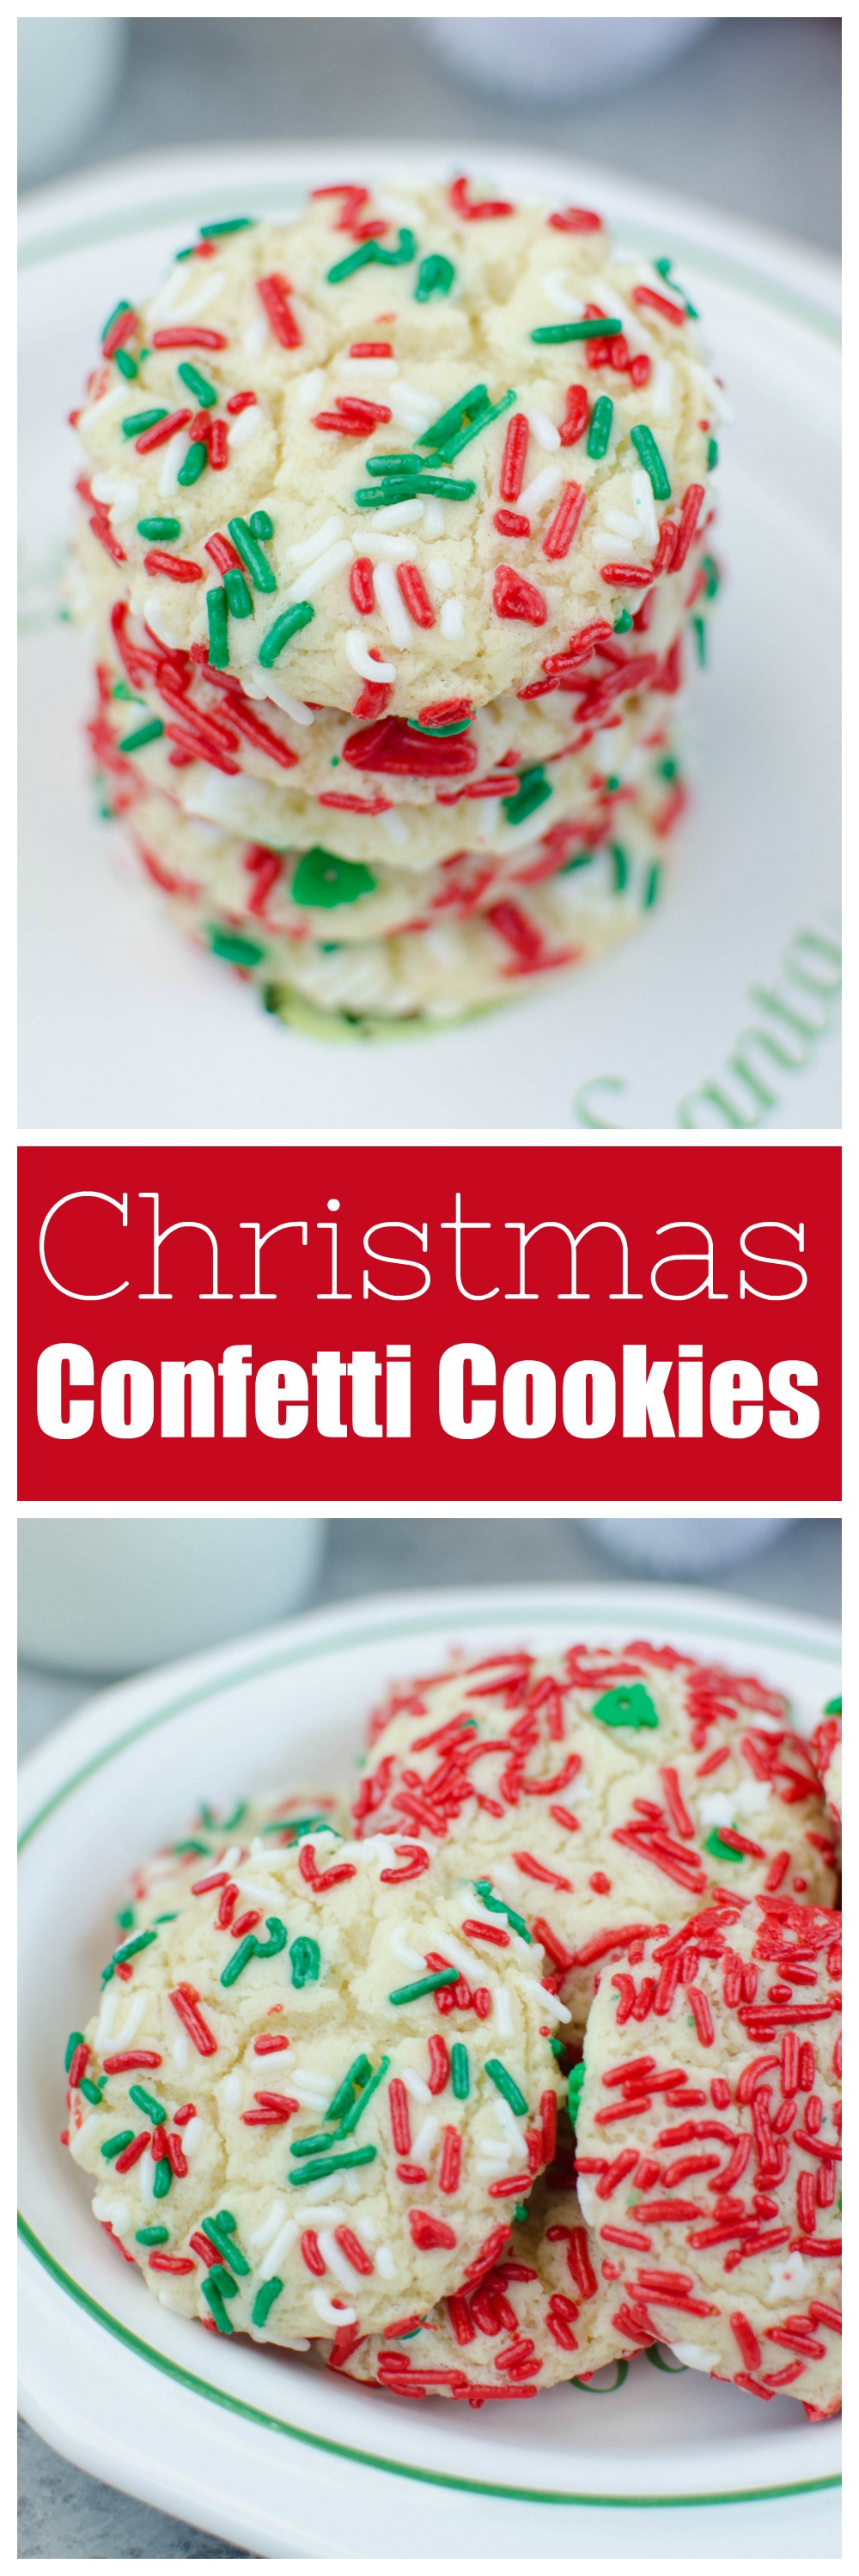 Christmas Confetti Cookies - soft and chewy sugar cookies rolled in Christmas sprinkles. Santa is going to love these cookies!